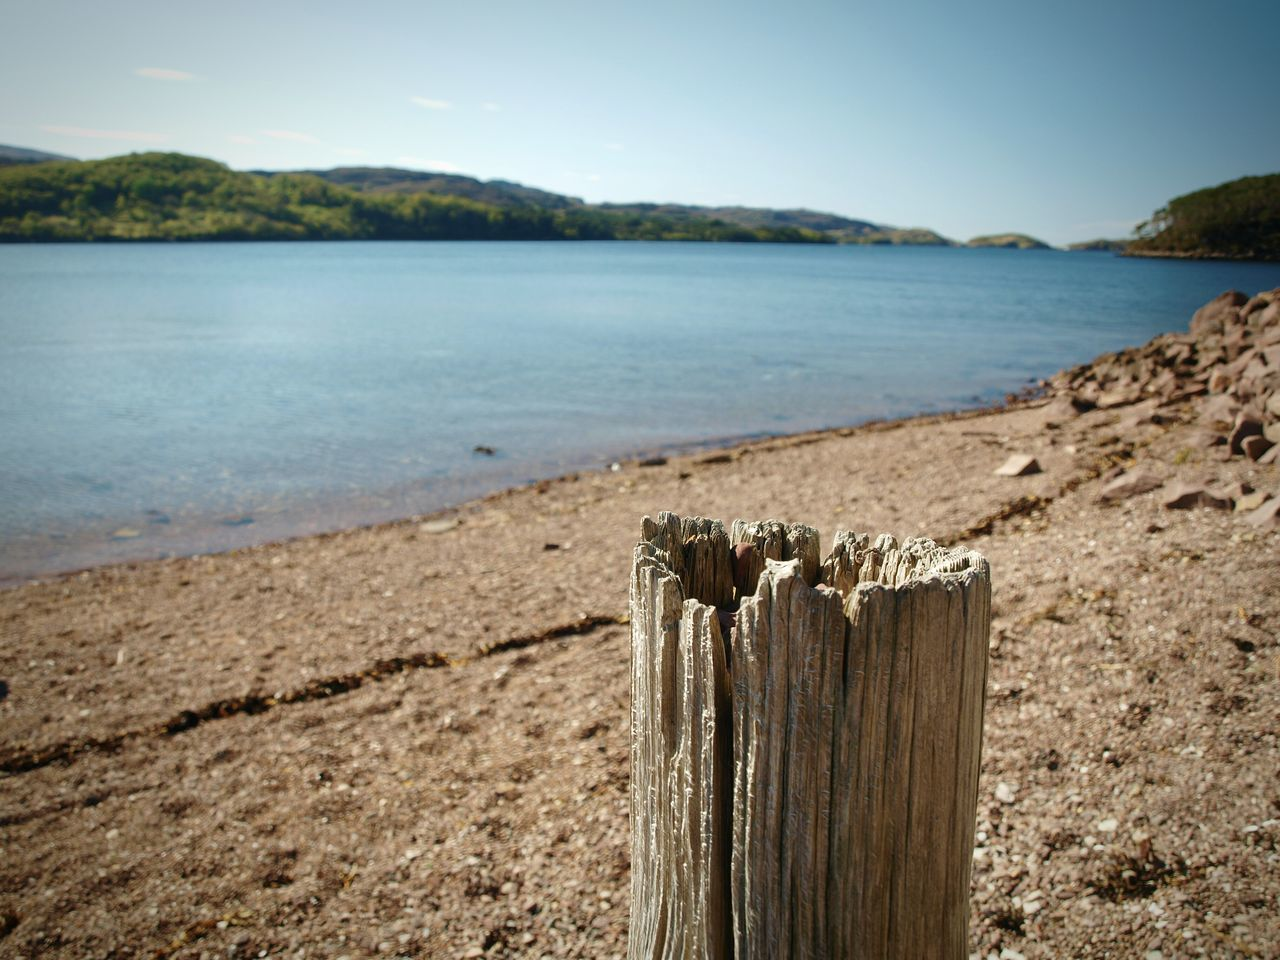 Shieldaig Scotland Highlands Loch  Beach Water Lake Mountain Wooden Post Landscape Tranquility Outdoors Scenics No People Beauty In Nature Hills Pebbles Day Sky Blue Sky Clear Sky The Great Outdoors - 2017 EyeEm Awards Close-up